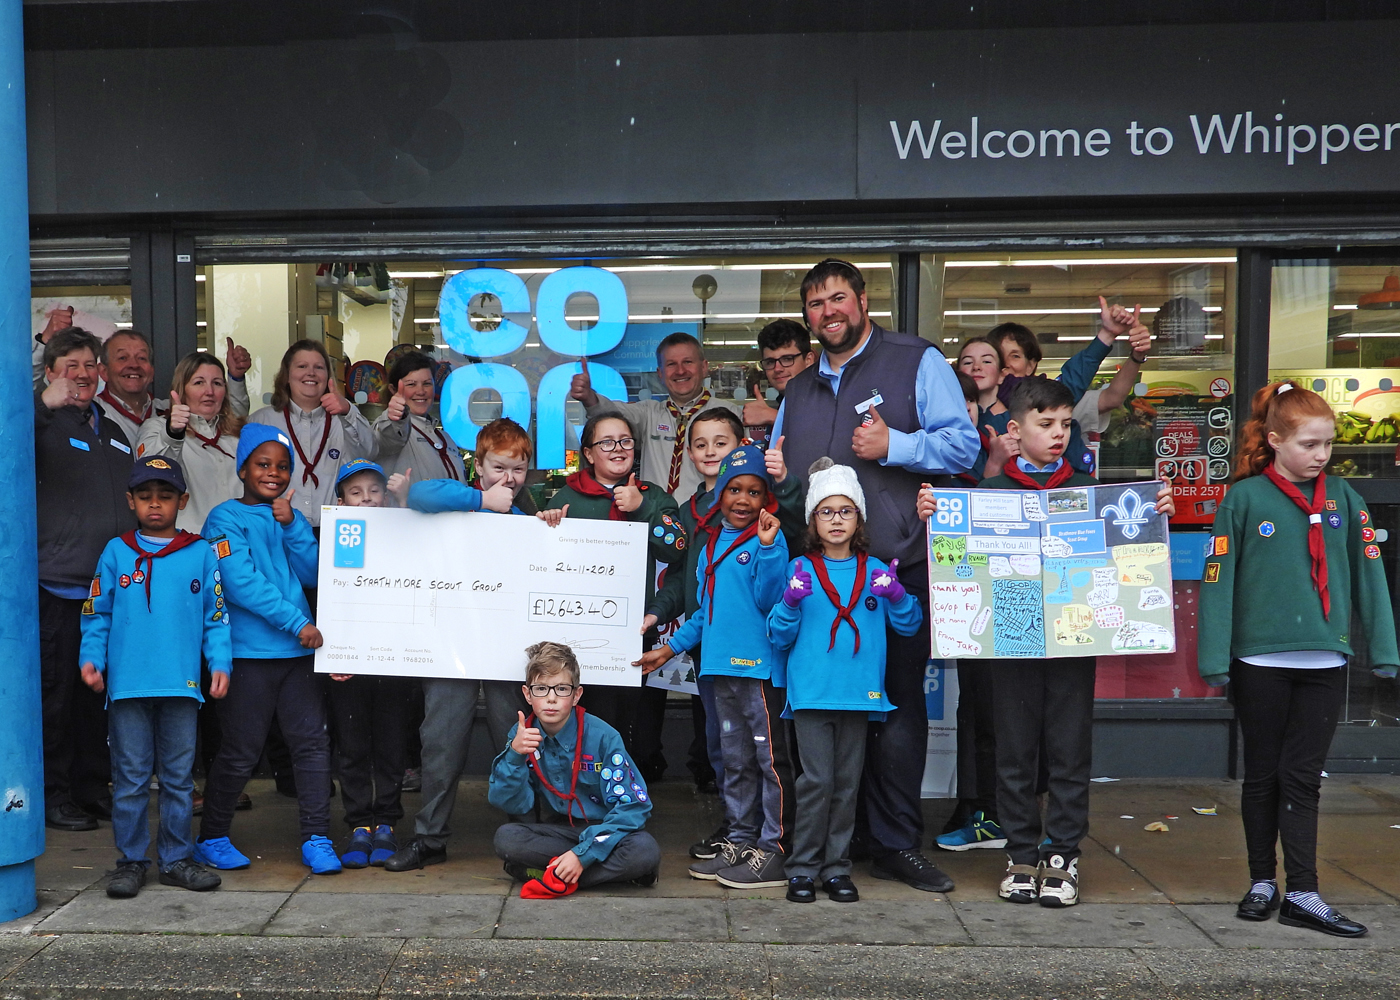 Co Op £12K Cheque adds up to New Camping Gear for Luton Scouts